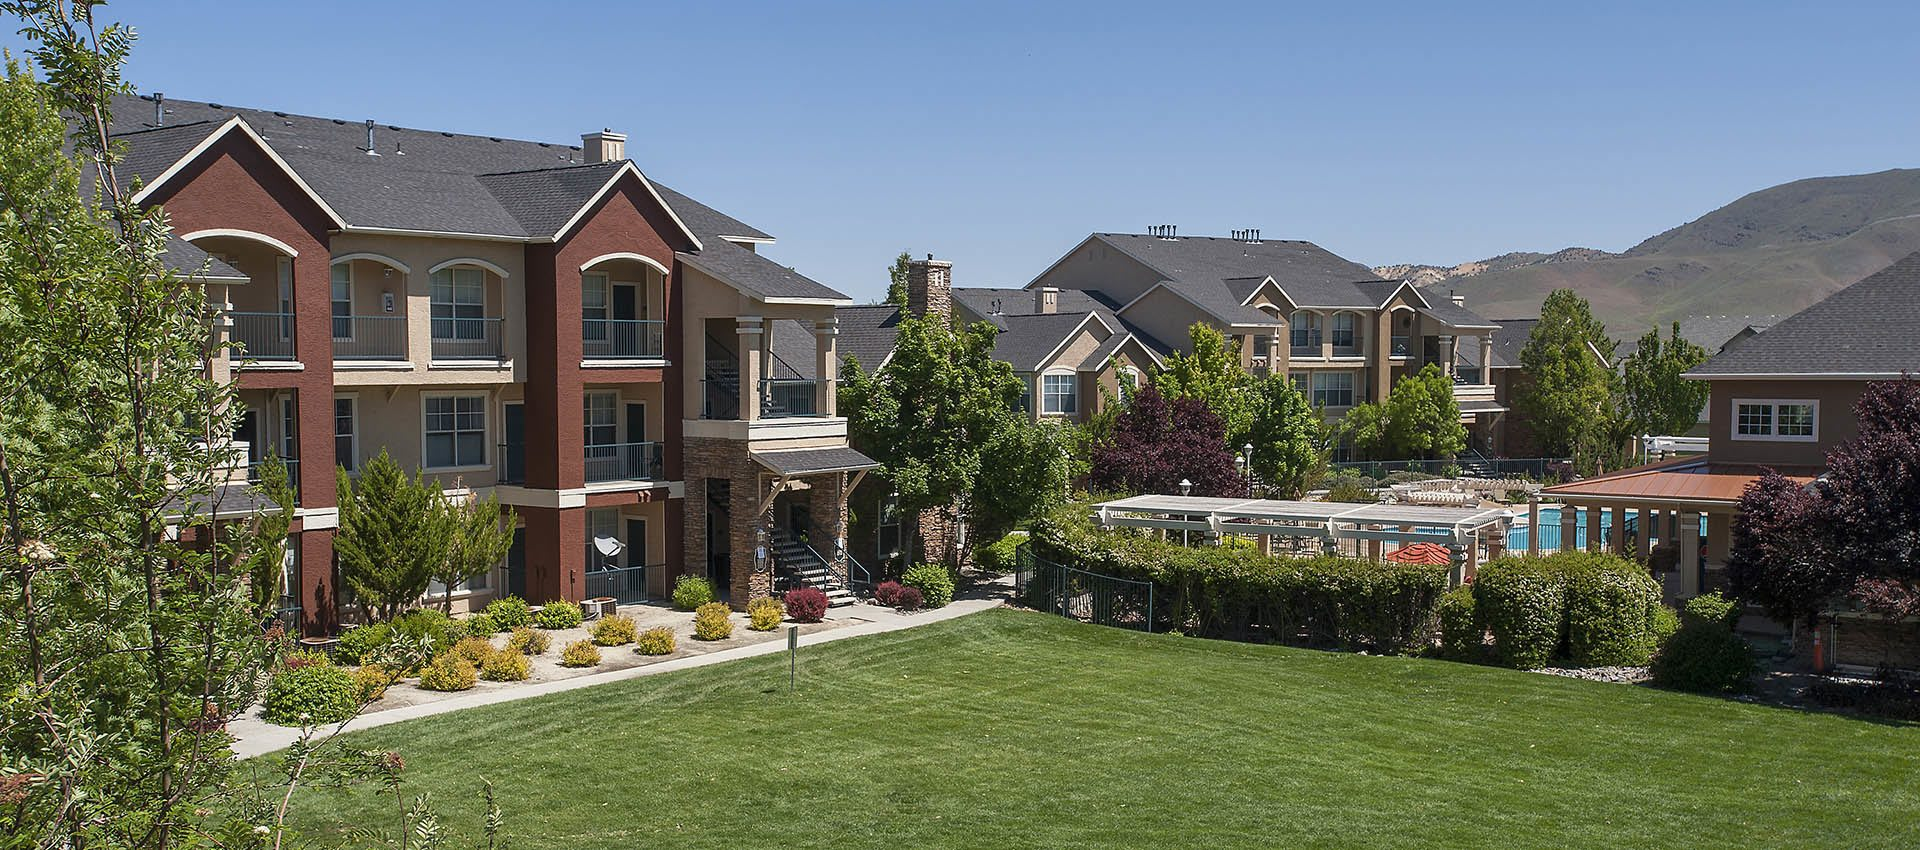 Condominiums with easy access to grass field at The Vintage at South Meadows Condominium Rentals in Reno